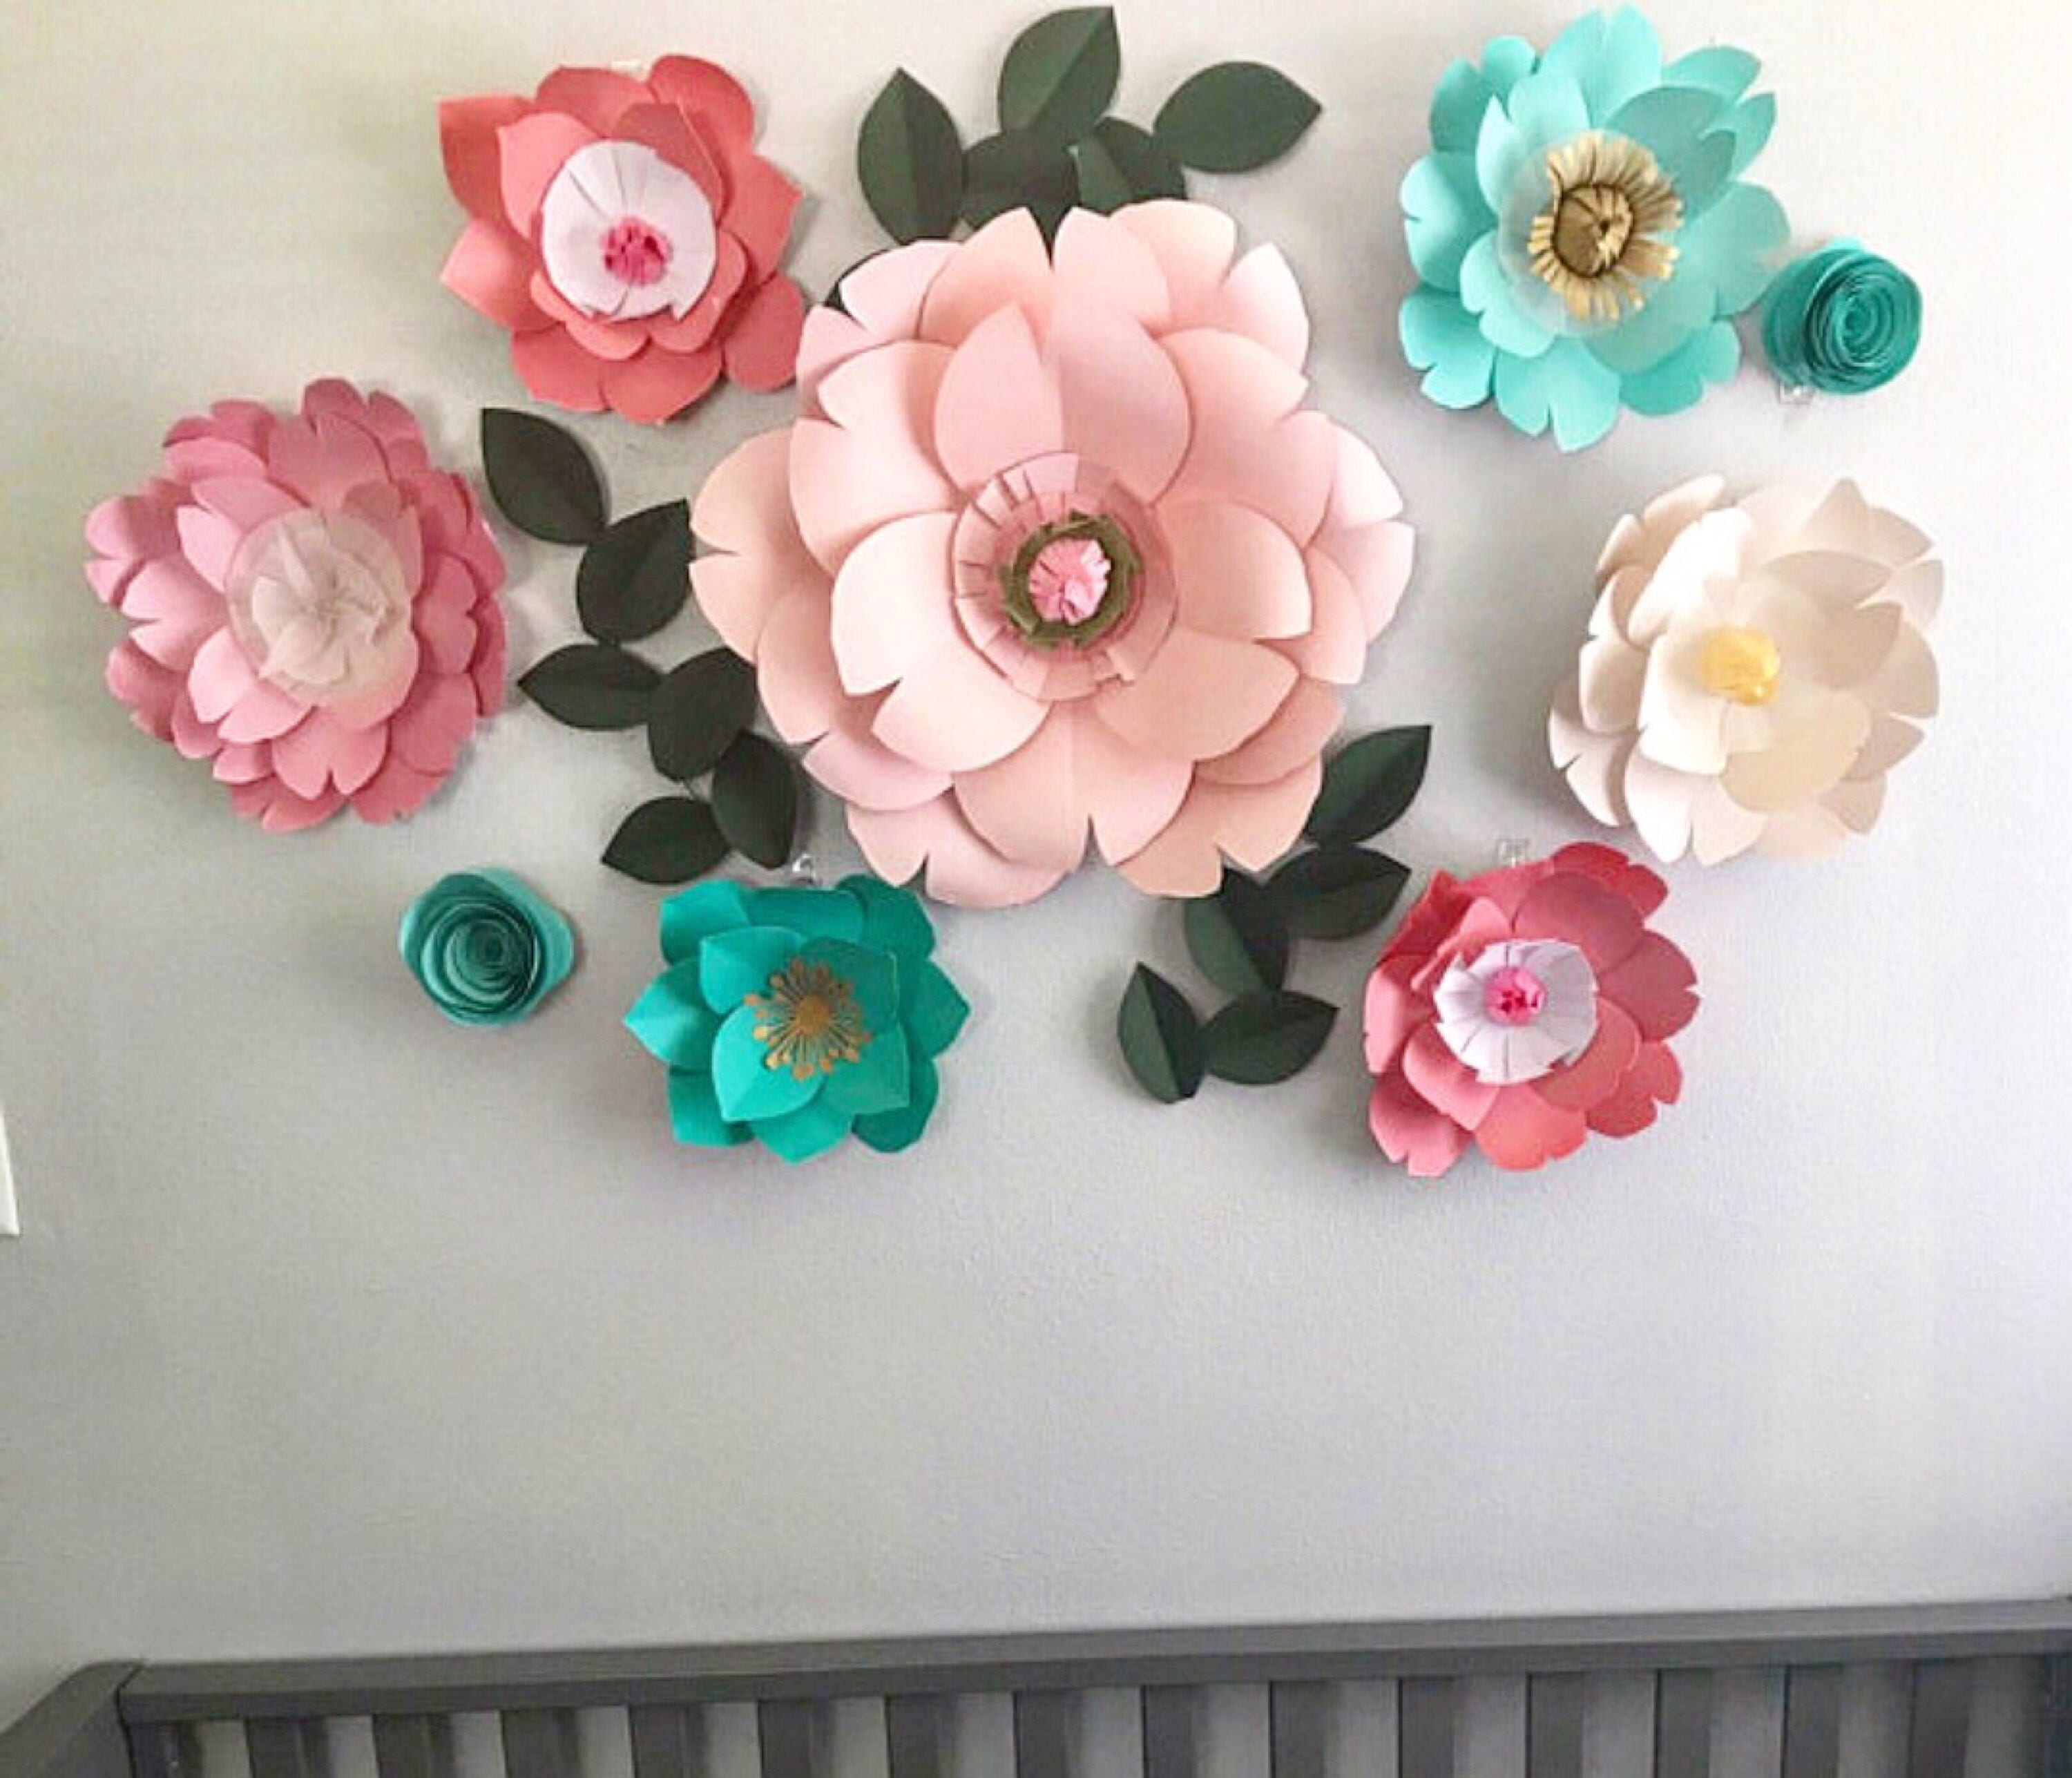 paper guide crafty types decor flower paperflowergirlsmiami by wall on flowers craft group room ideas large pinterest rose pin gift